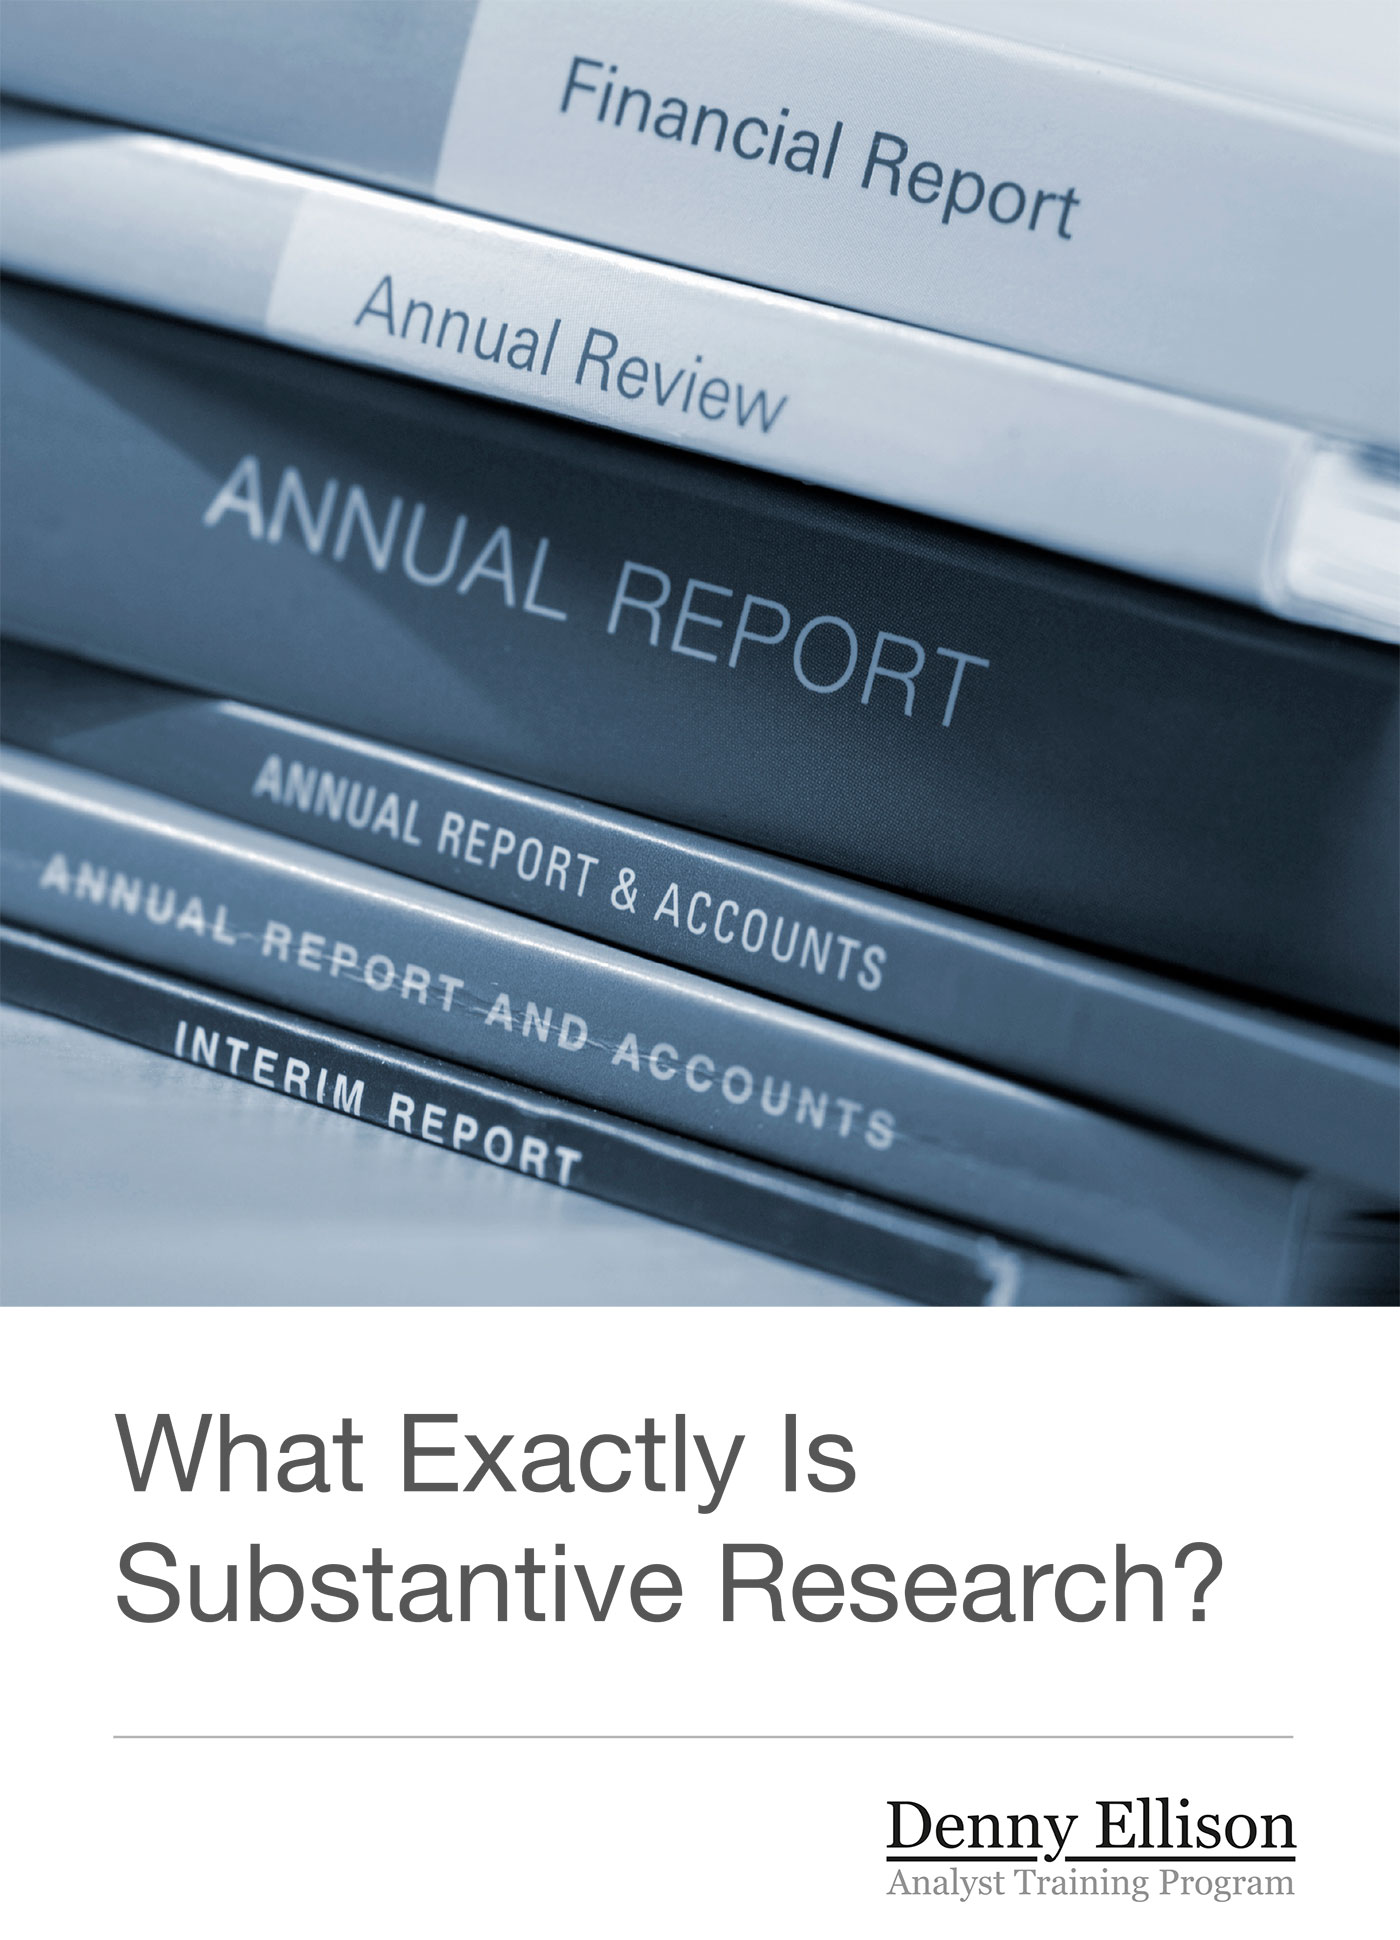 What Exactly Is Substantive Research?